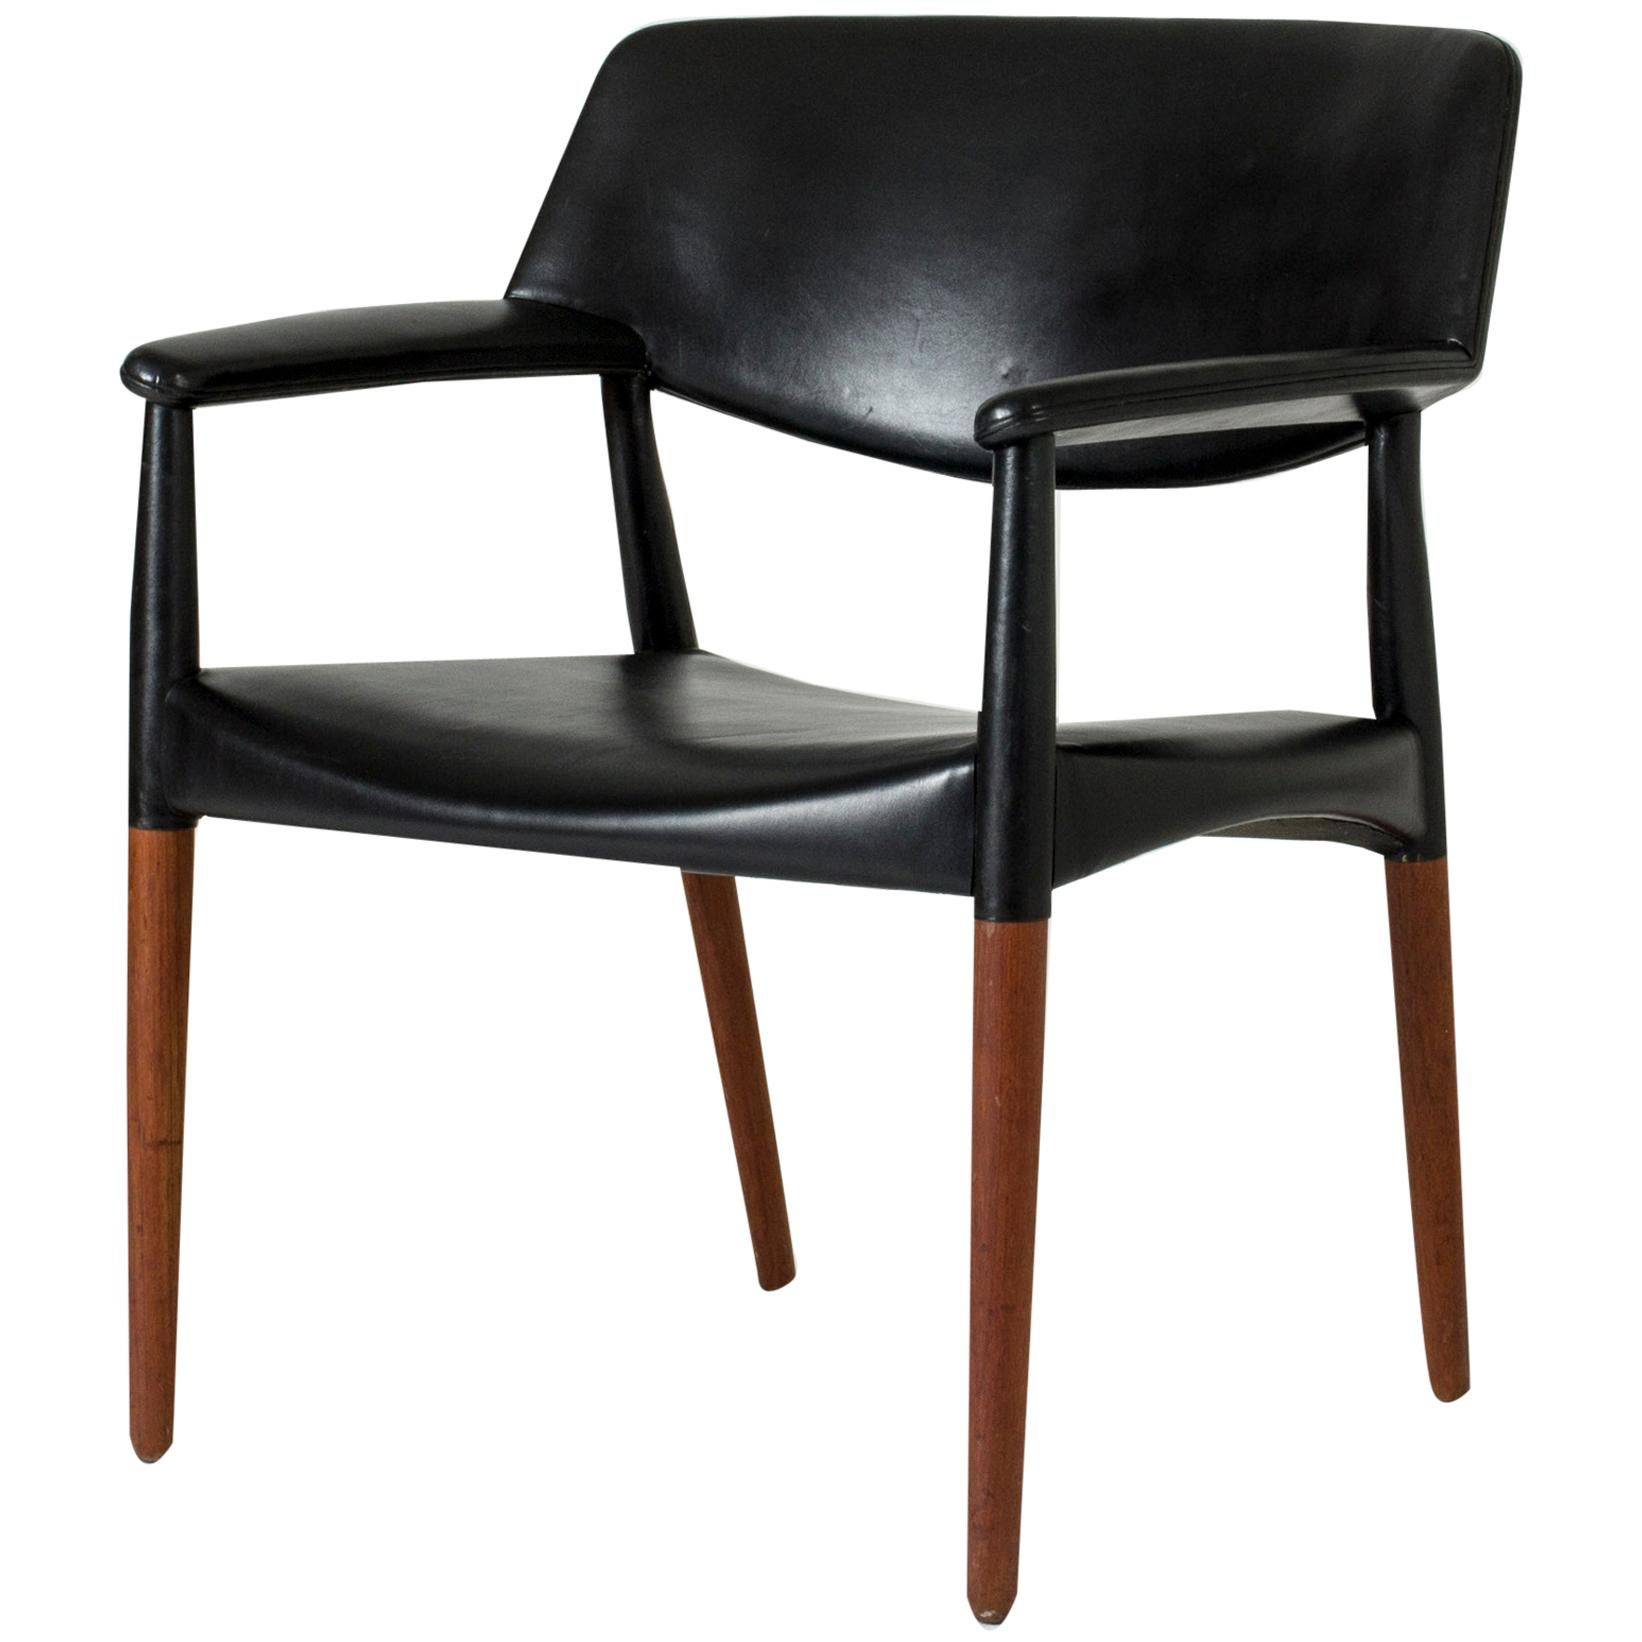 Midcentury Leather Armchair by Ejnar Larsen & Aksel Bender Madsen for Willy Beck